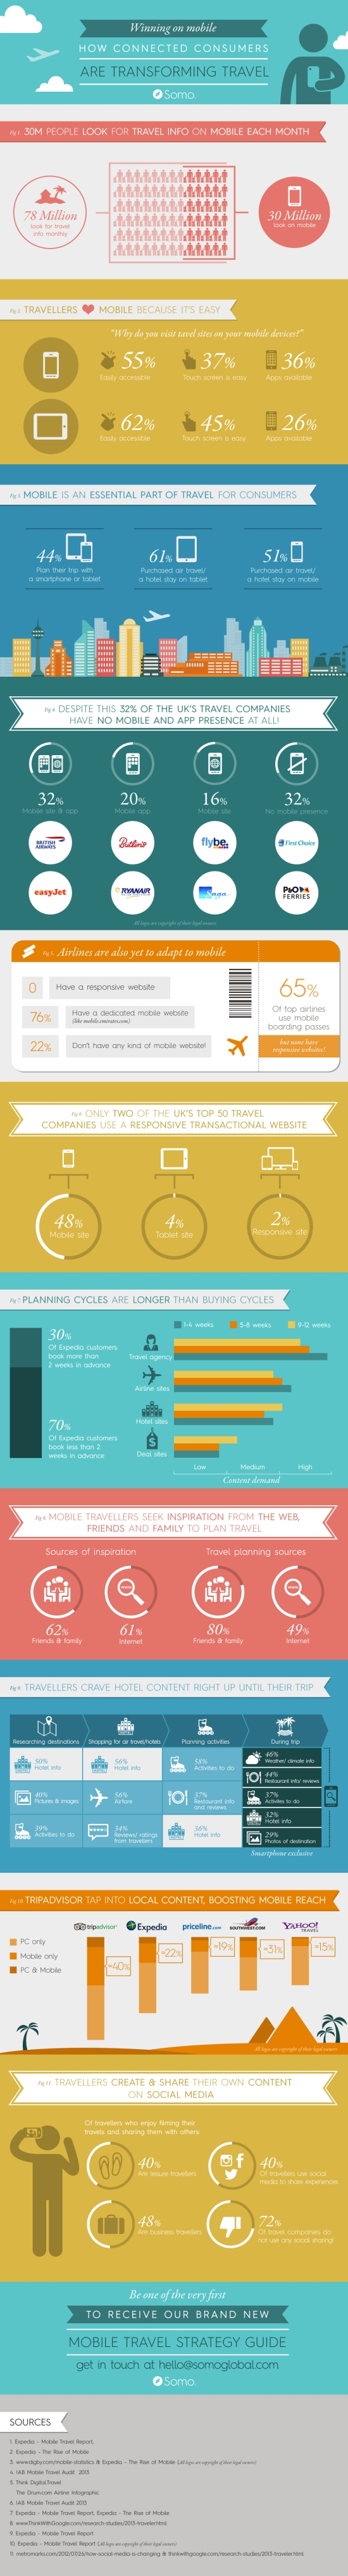 Tapping into mobile travel trends [INFOGRAPHIC]